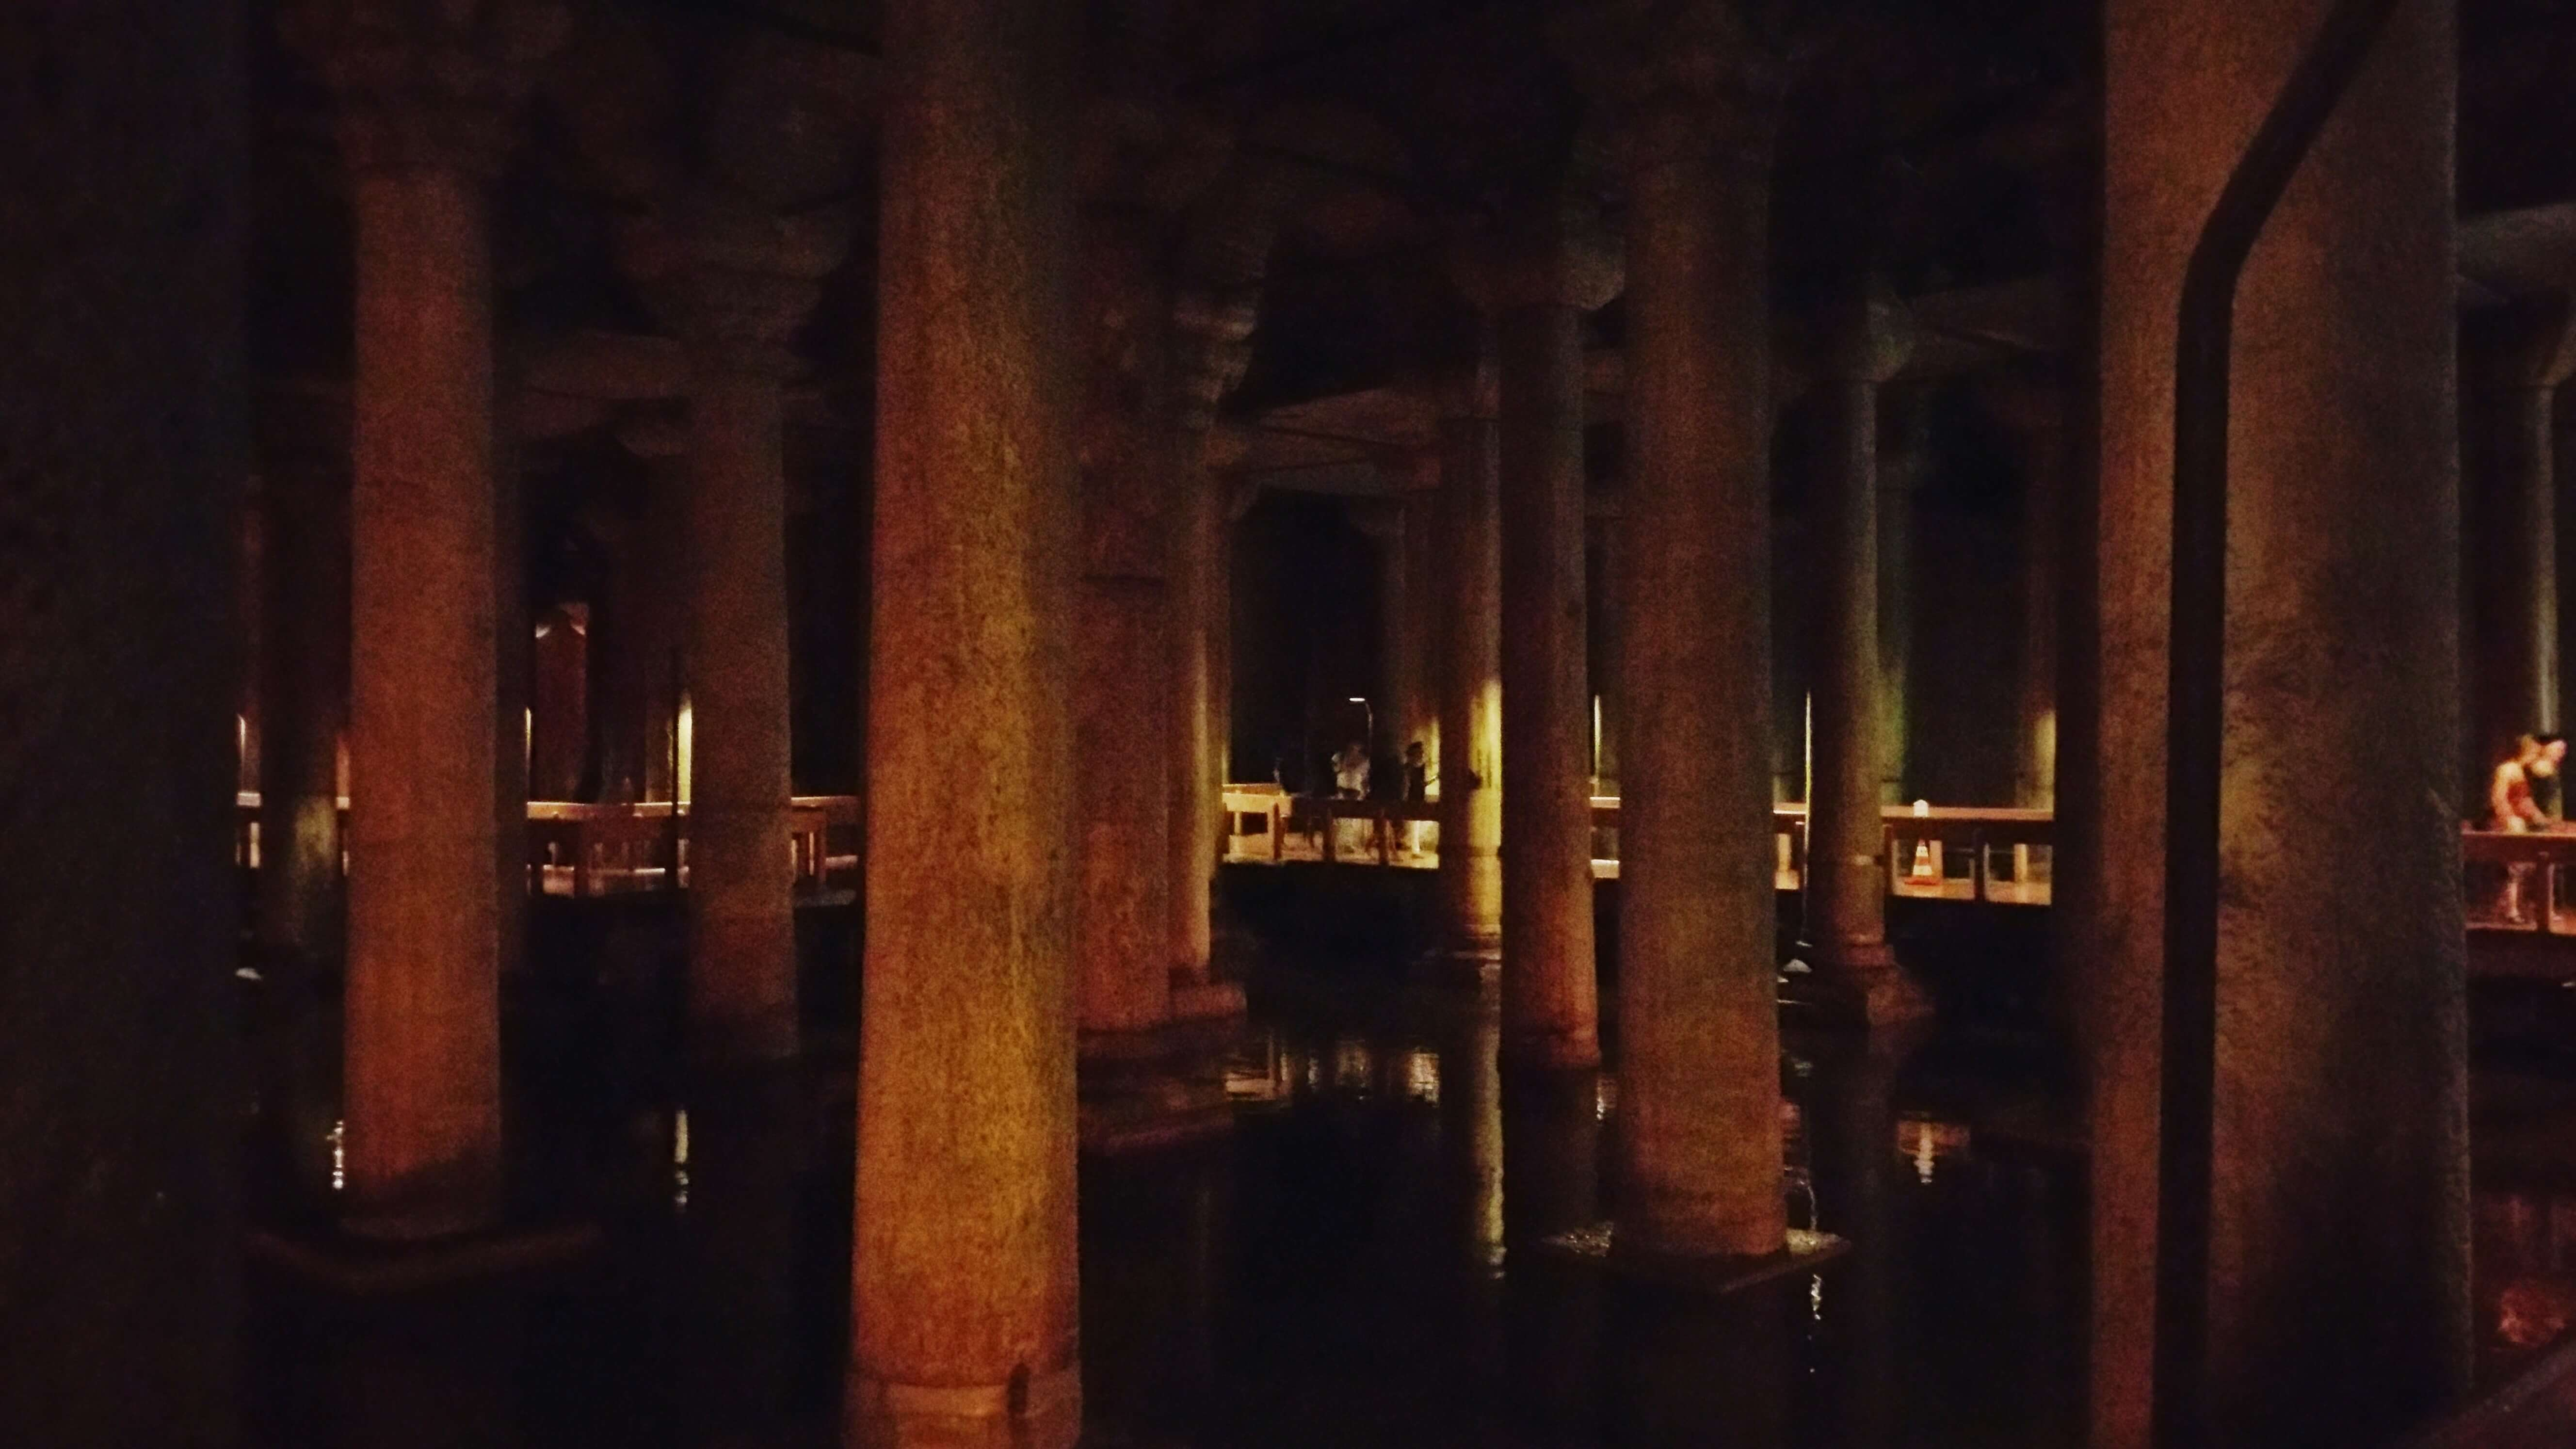 The Basilica Cistern by Kicking Back the Pebbles